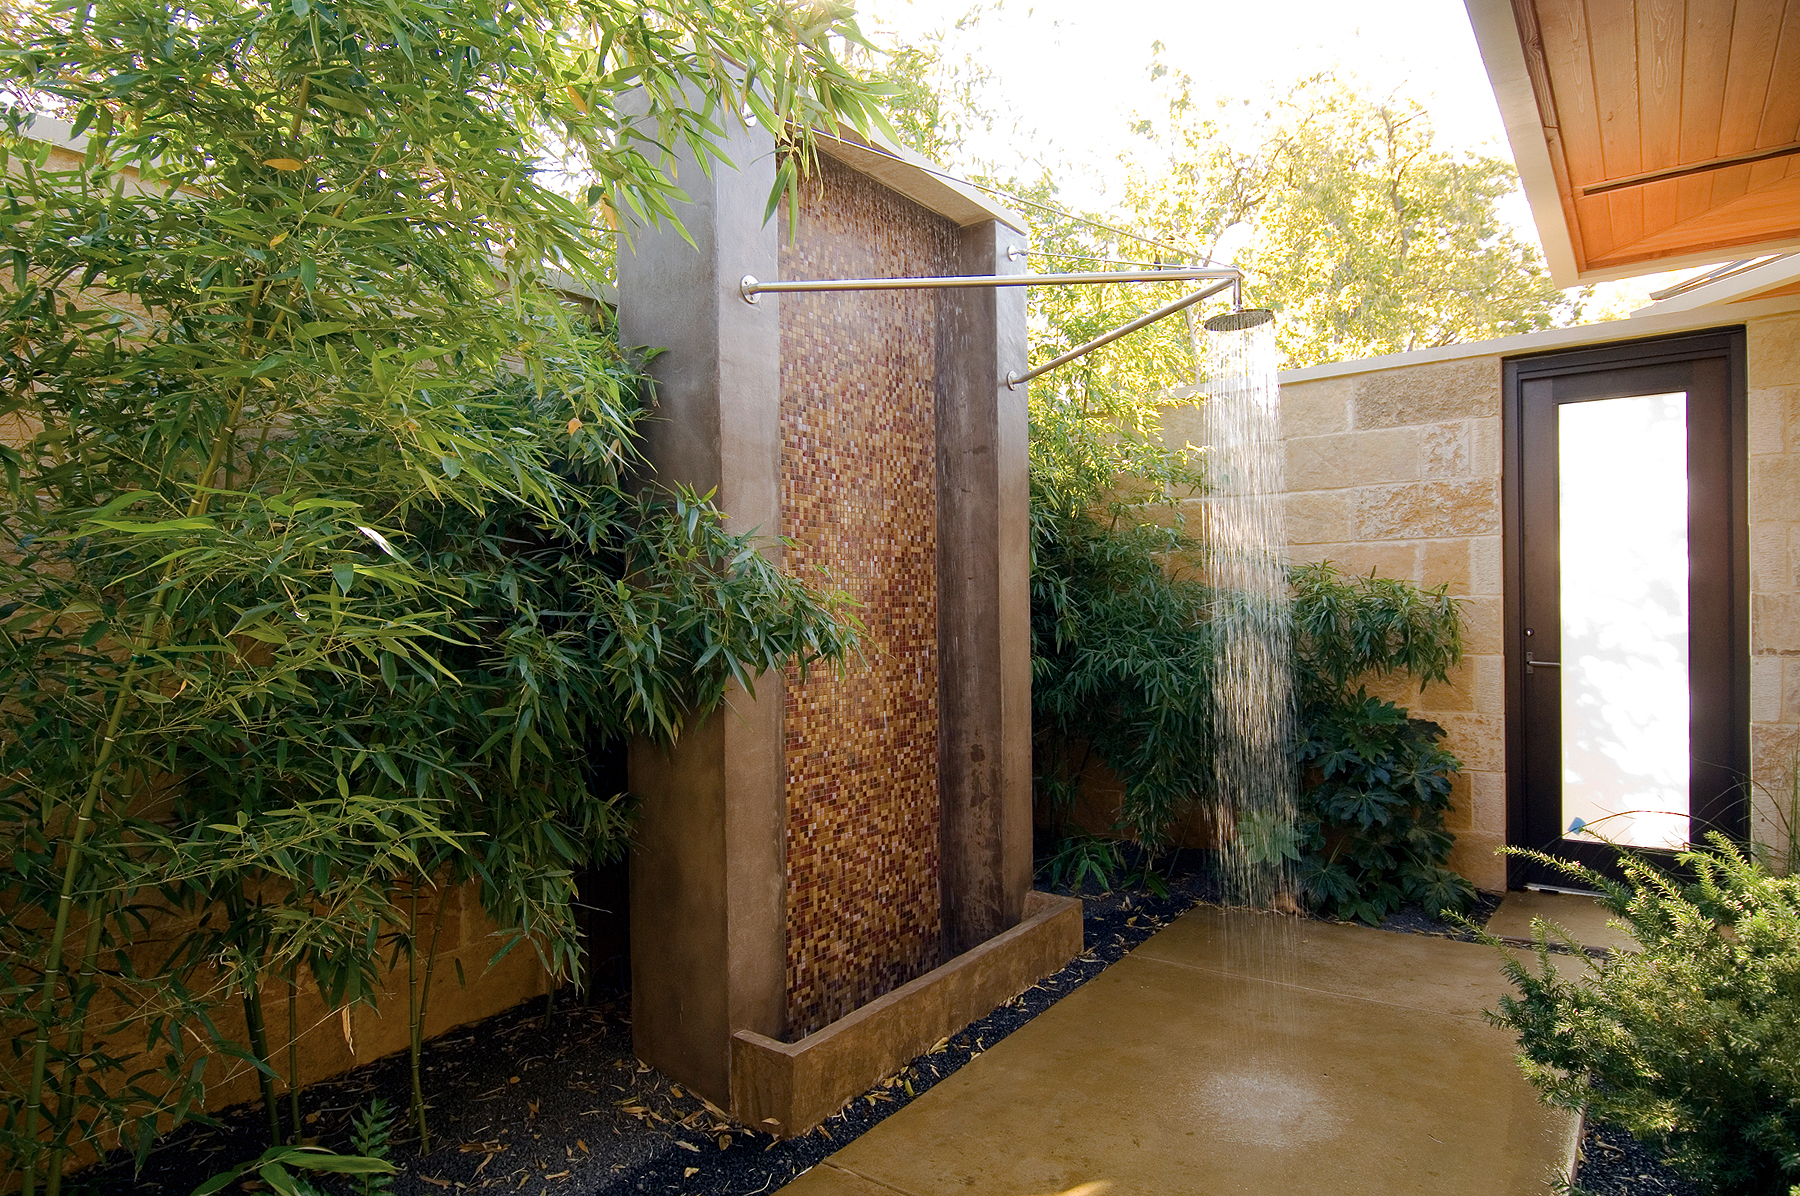 Luxury Open Showers epitome of luxury: 30 refreshing outdoor showers